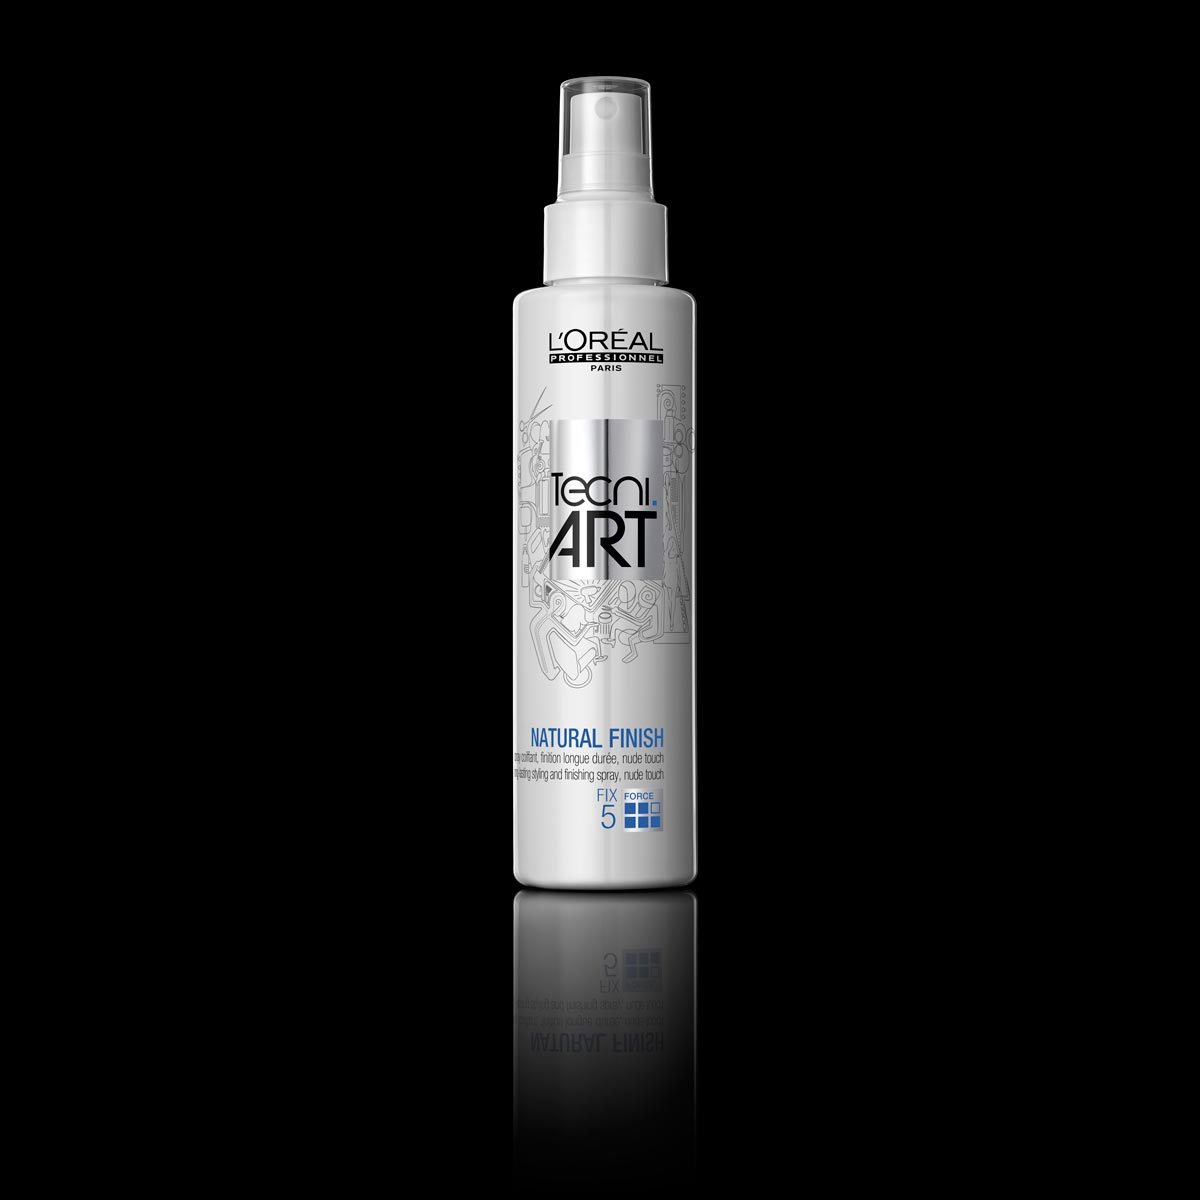 L'Oréal Professionel Nude Touch Natural Finish Tecni.ART